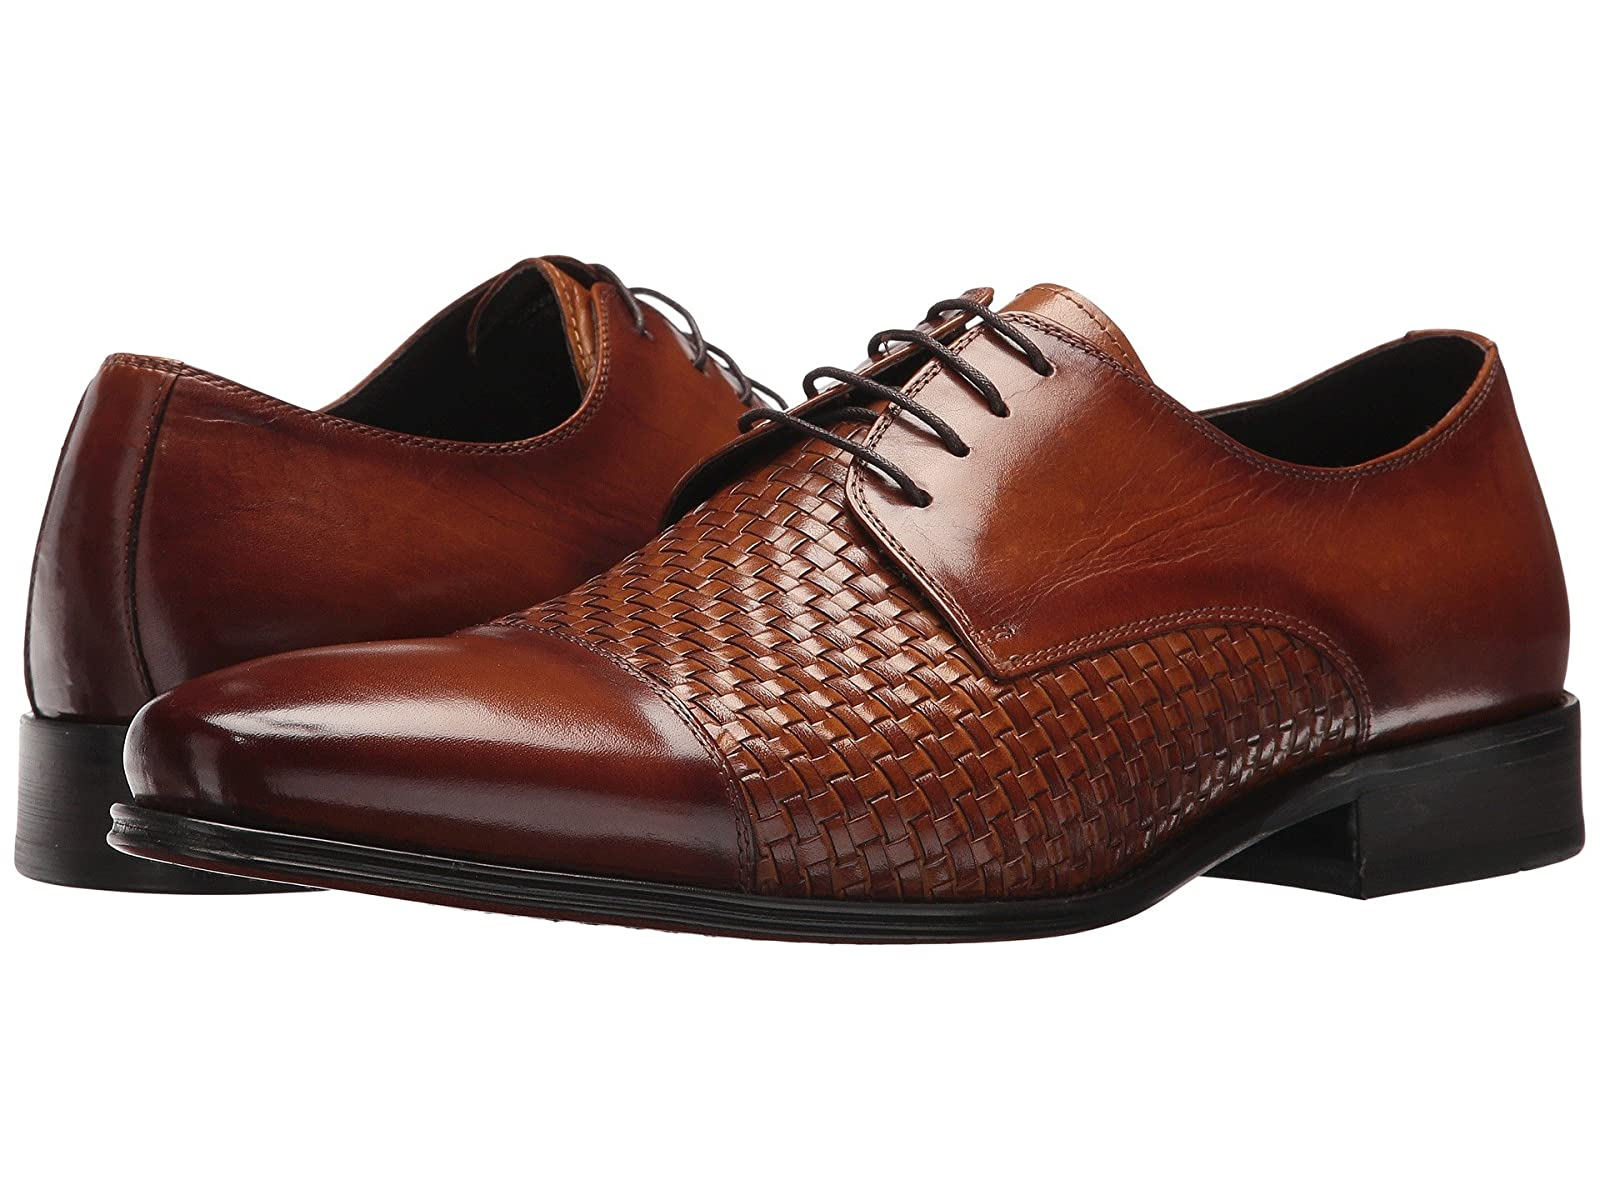 Carrucci GuidoAtmospheric grades have affordable shoes